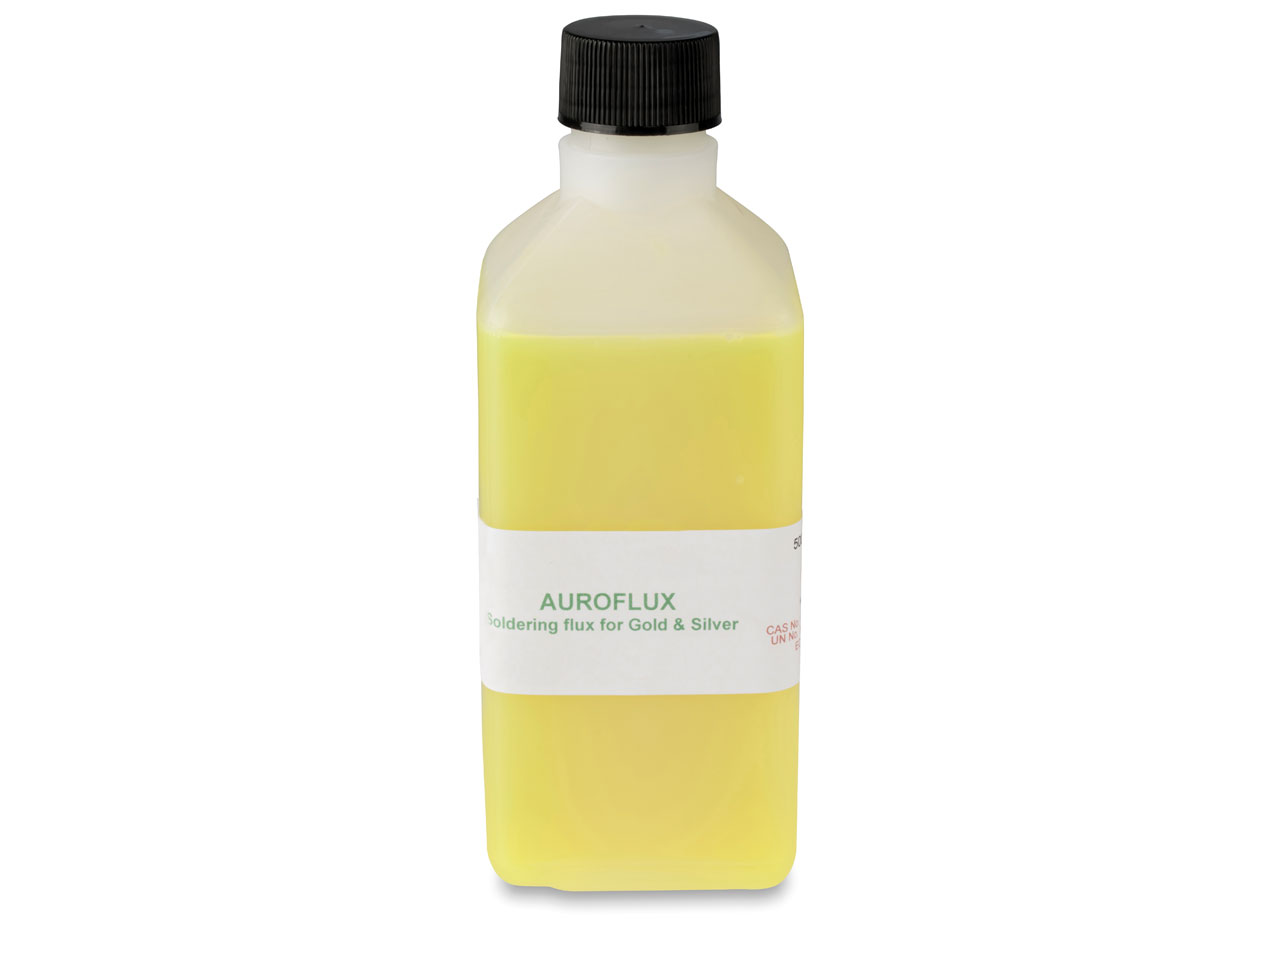 Auroflux Soldering Fluid 500ml